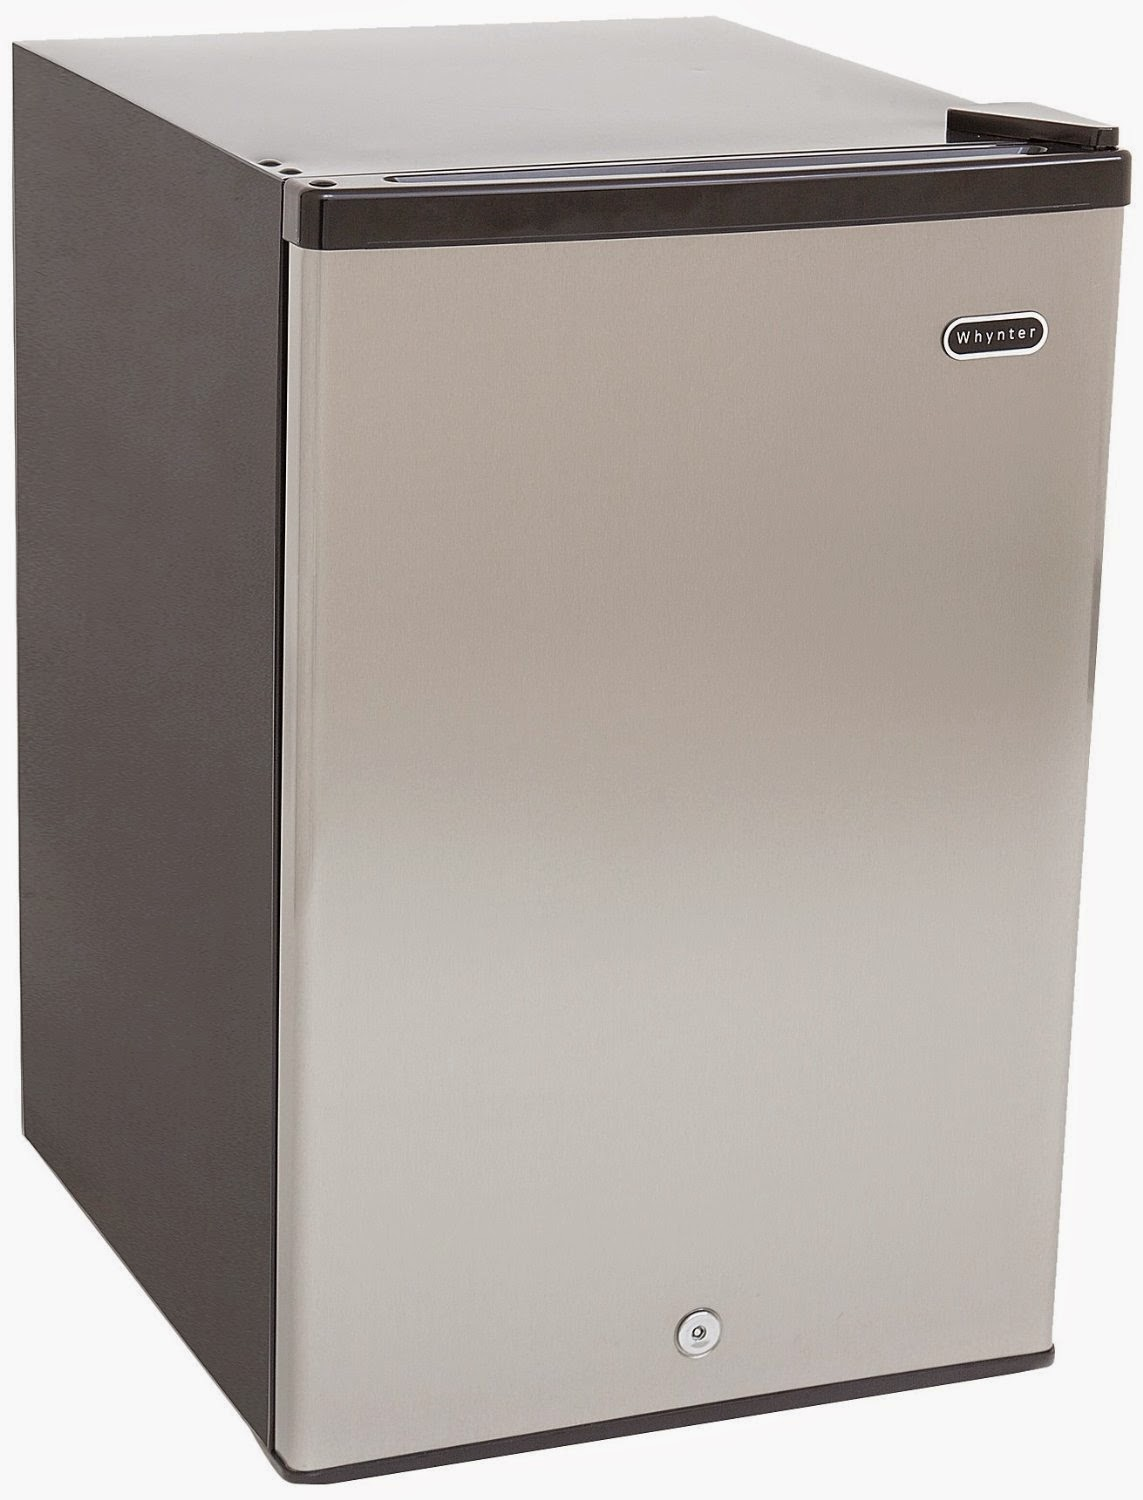 small freezer small deep freezers for sale. Black Bedroom Furniture Sets. Home Design Ideas